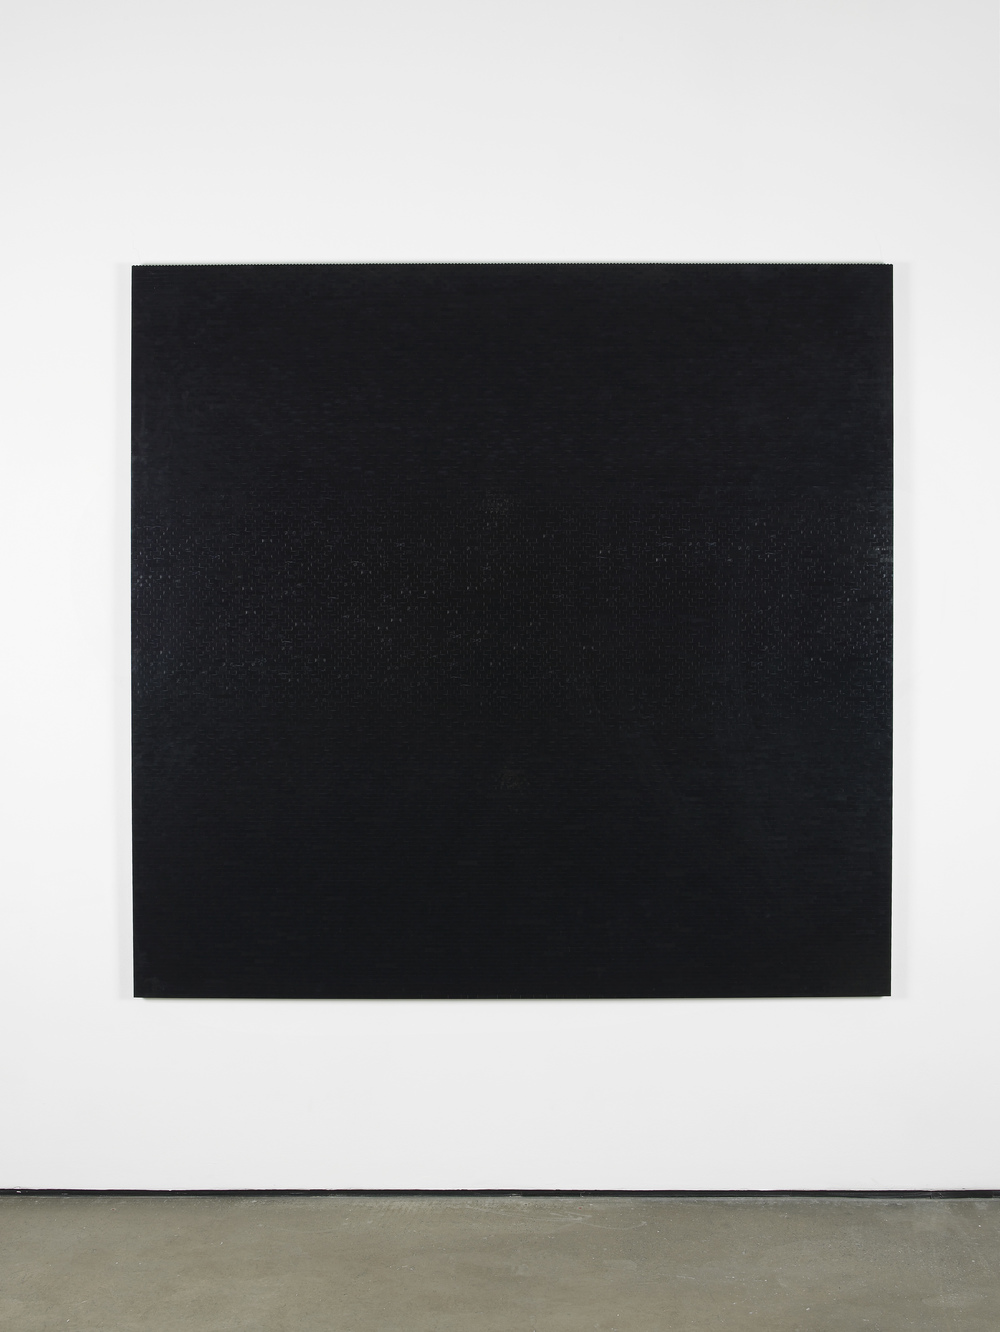 Michael Wilkinson Black Wall 7 2013 Black lego, wooden frame 185 x 185 x 3 cm / 72.8 x 72.8 x 1.1 in